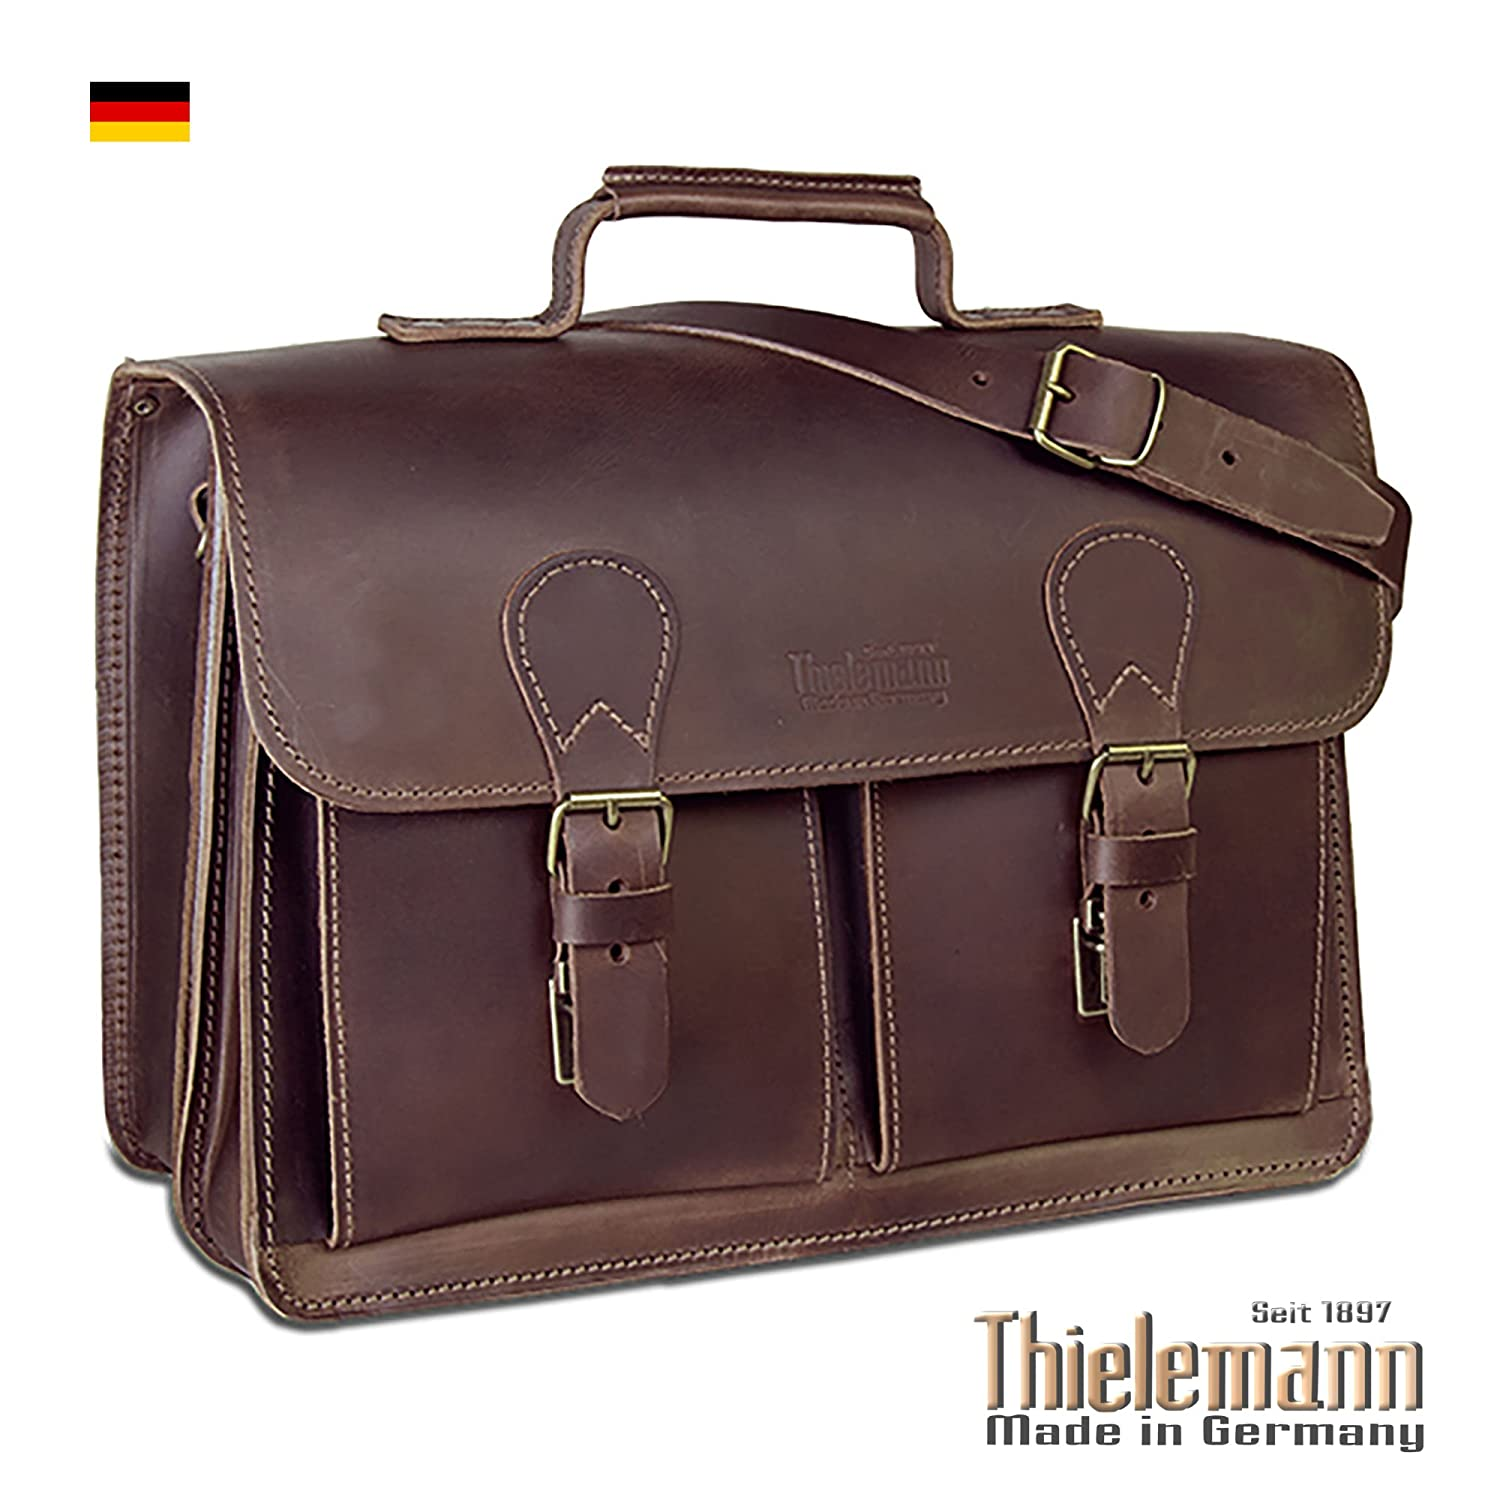 Thielemann Briefcase Messenger Laptop Bag Brown Full Grain Leather Made in Germany 10 Year Warranty